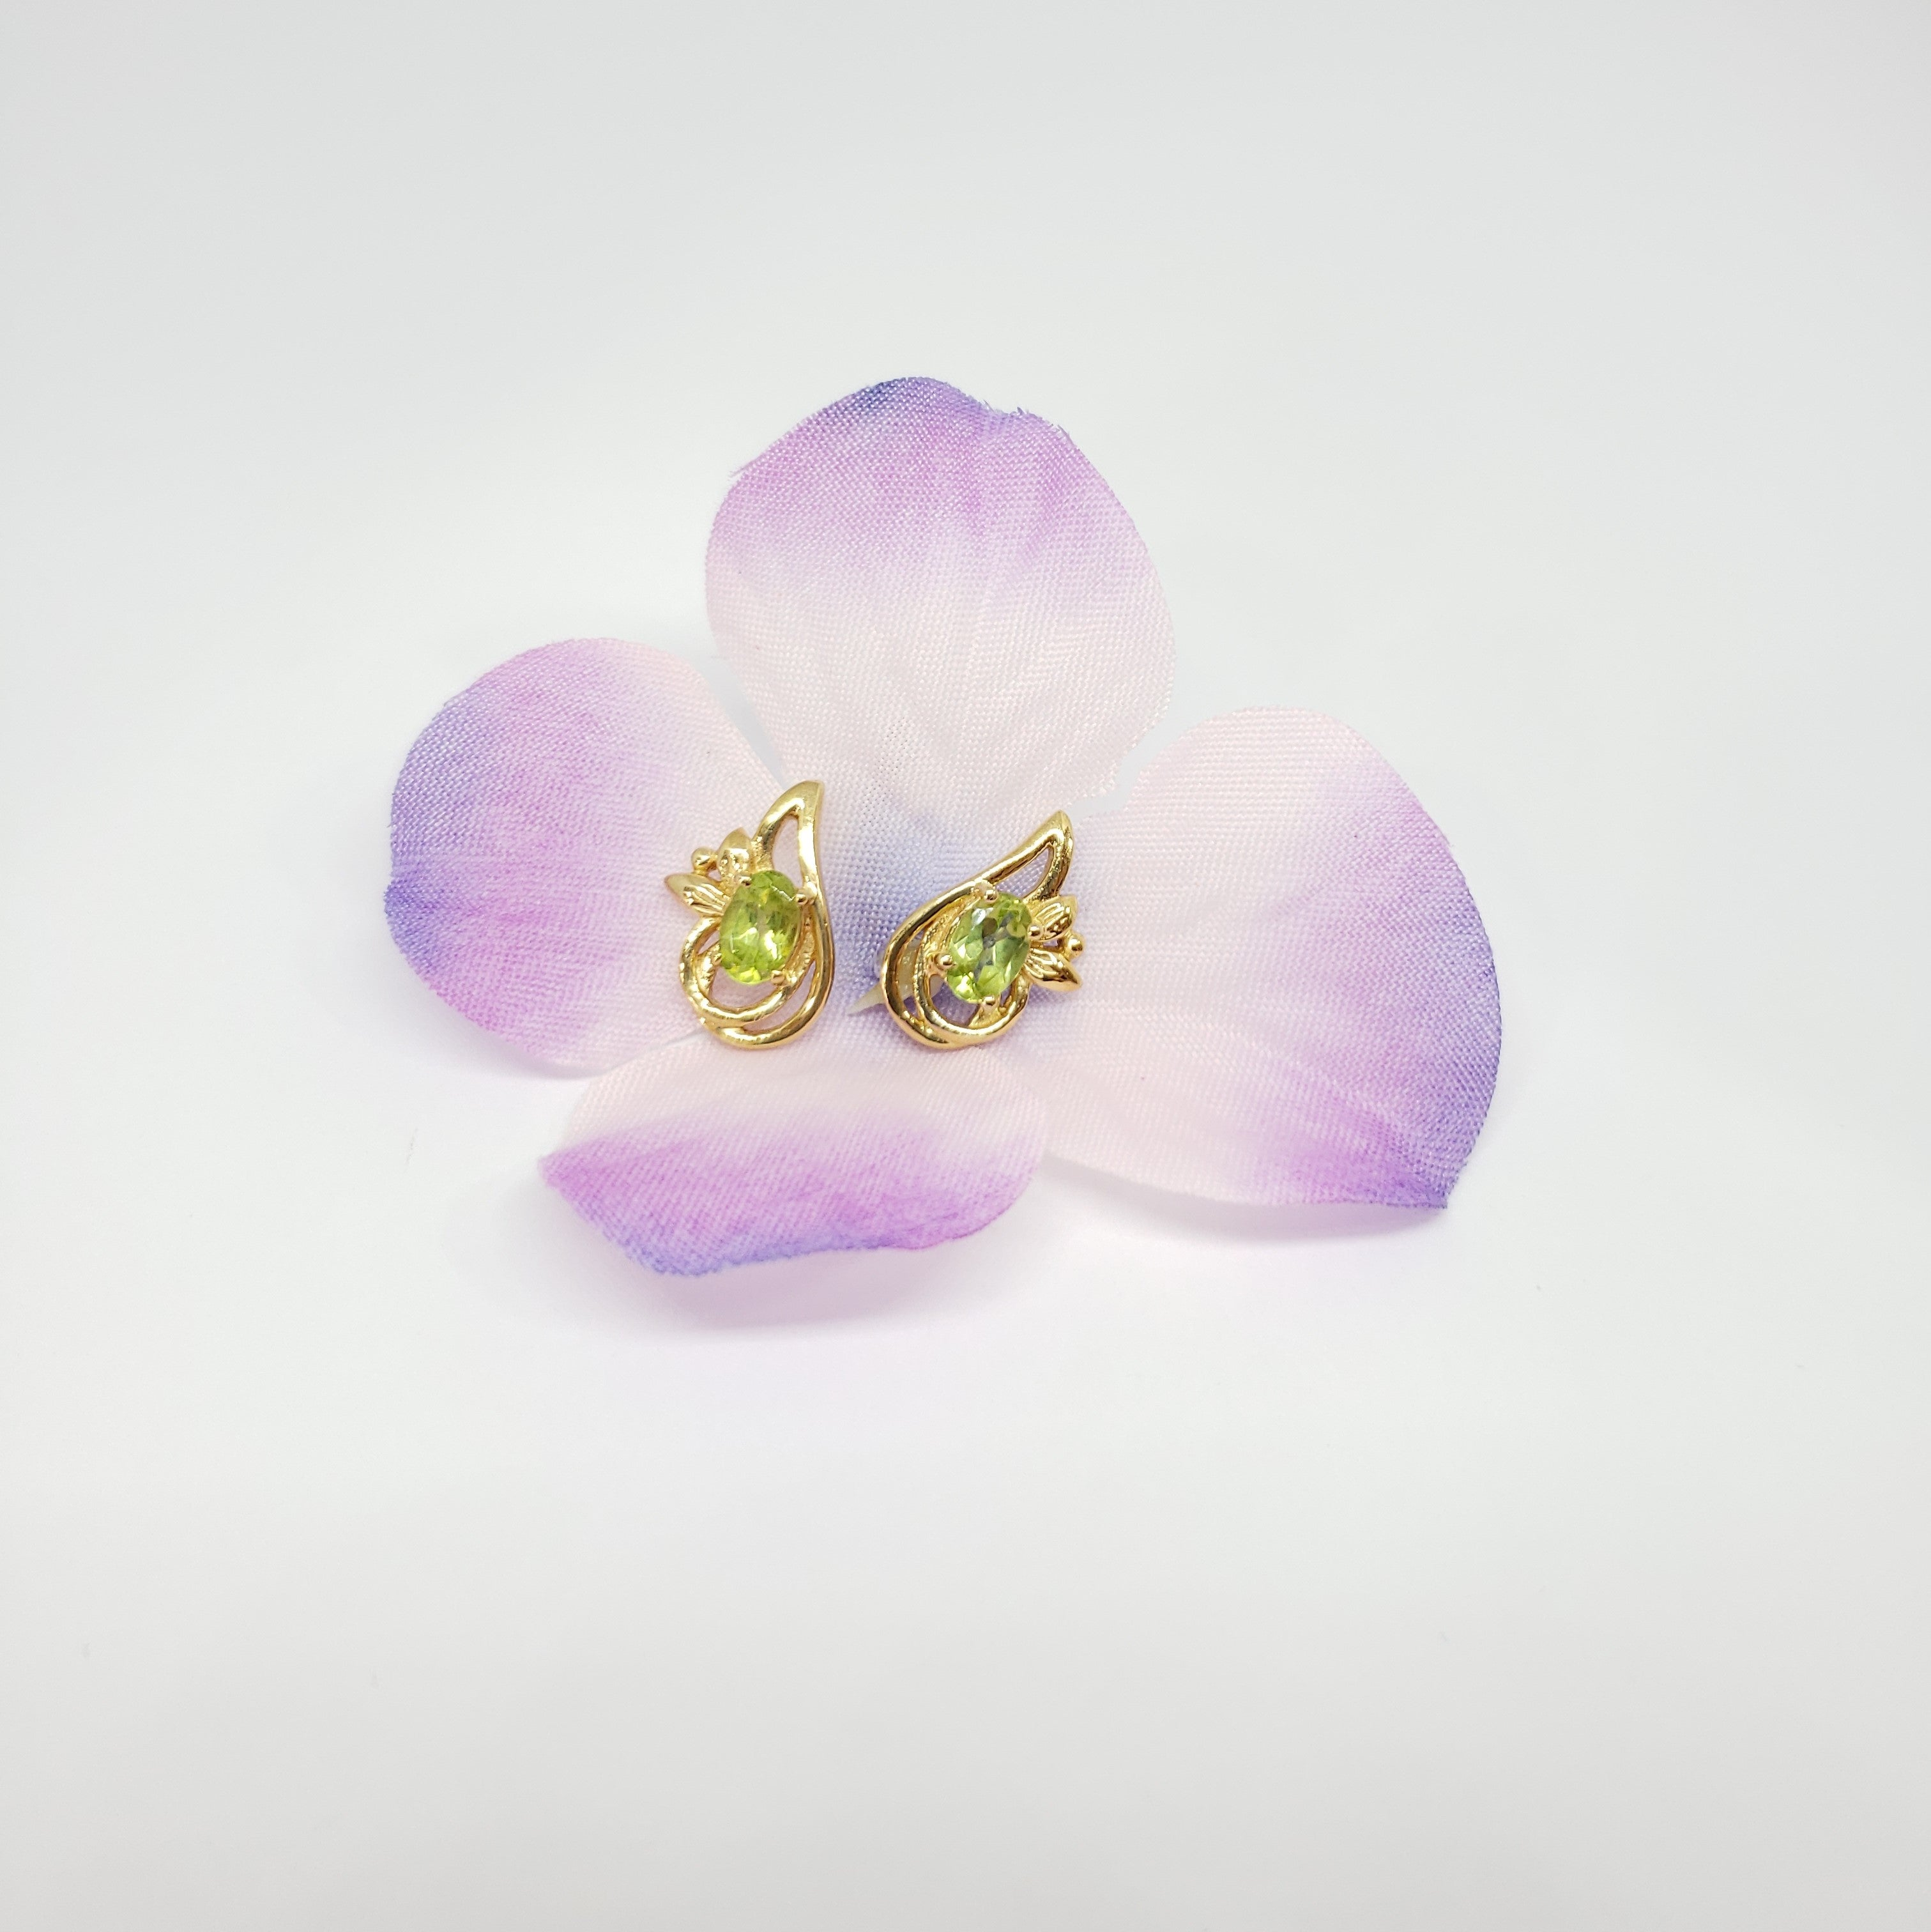 Hebei Peridot 14K YG Over Sterling Silver Earrings TGW 1.00 cts. - Houzz of DVA Boutique